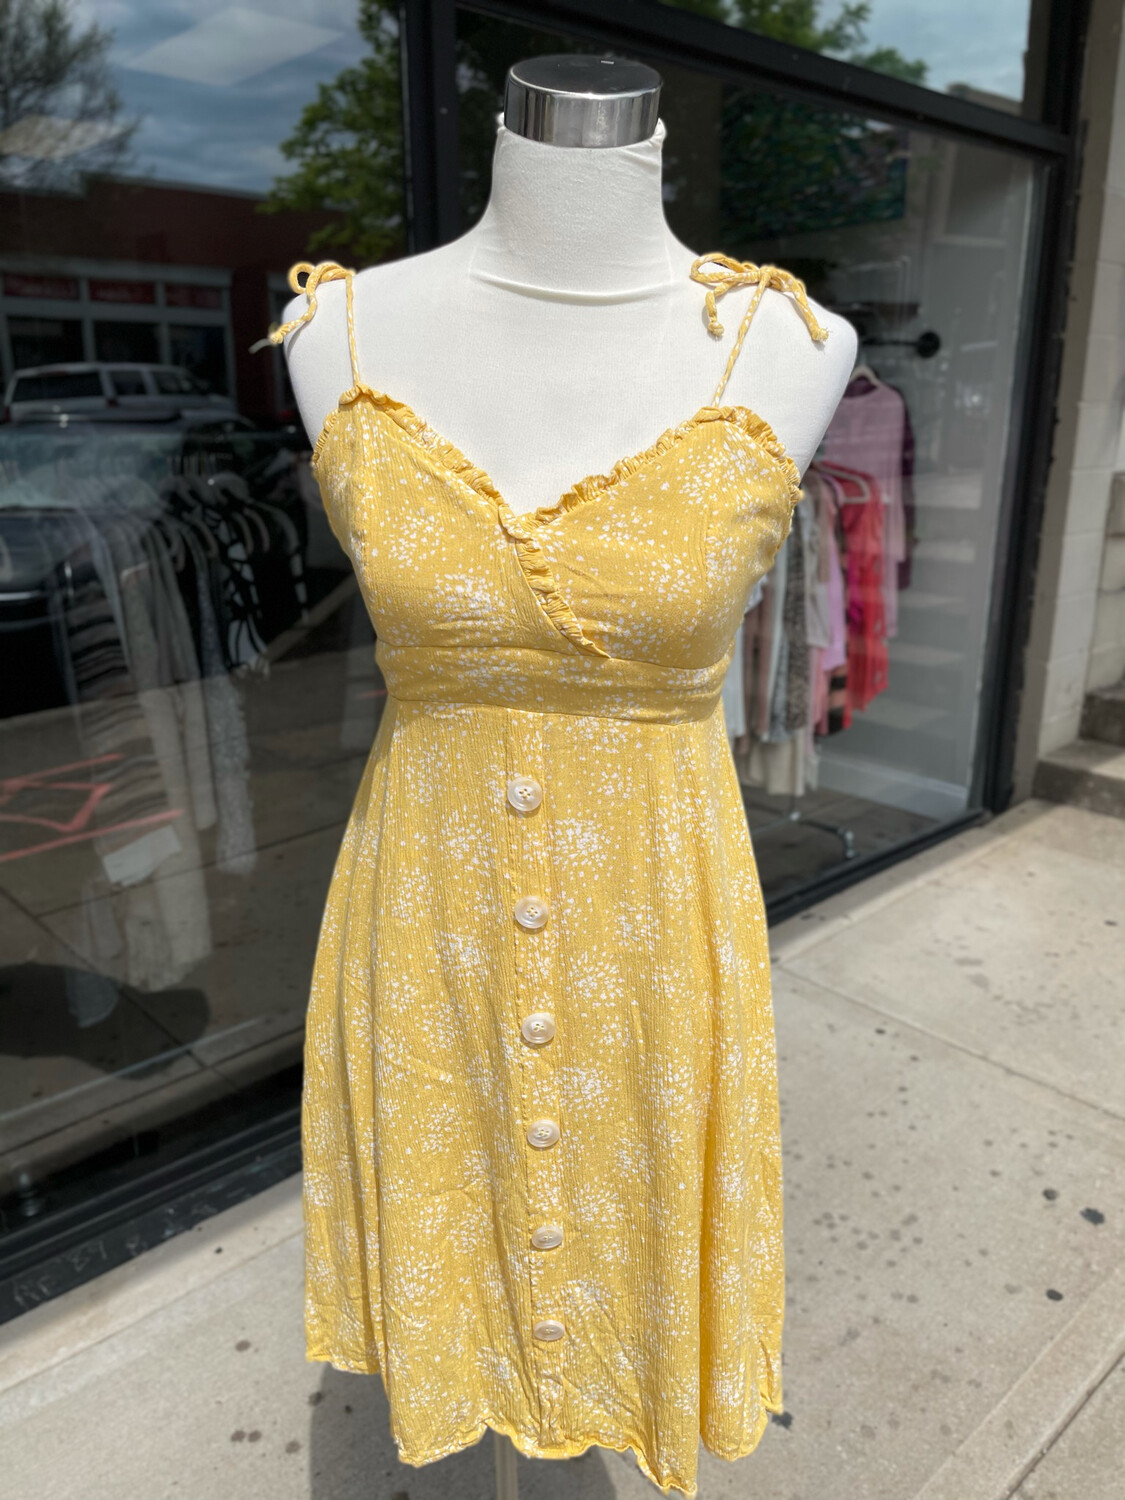 Hem & Thread Yellow Print Dress with Buttons - S